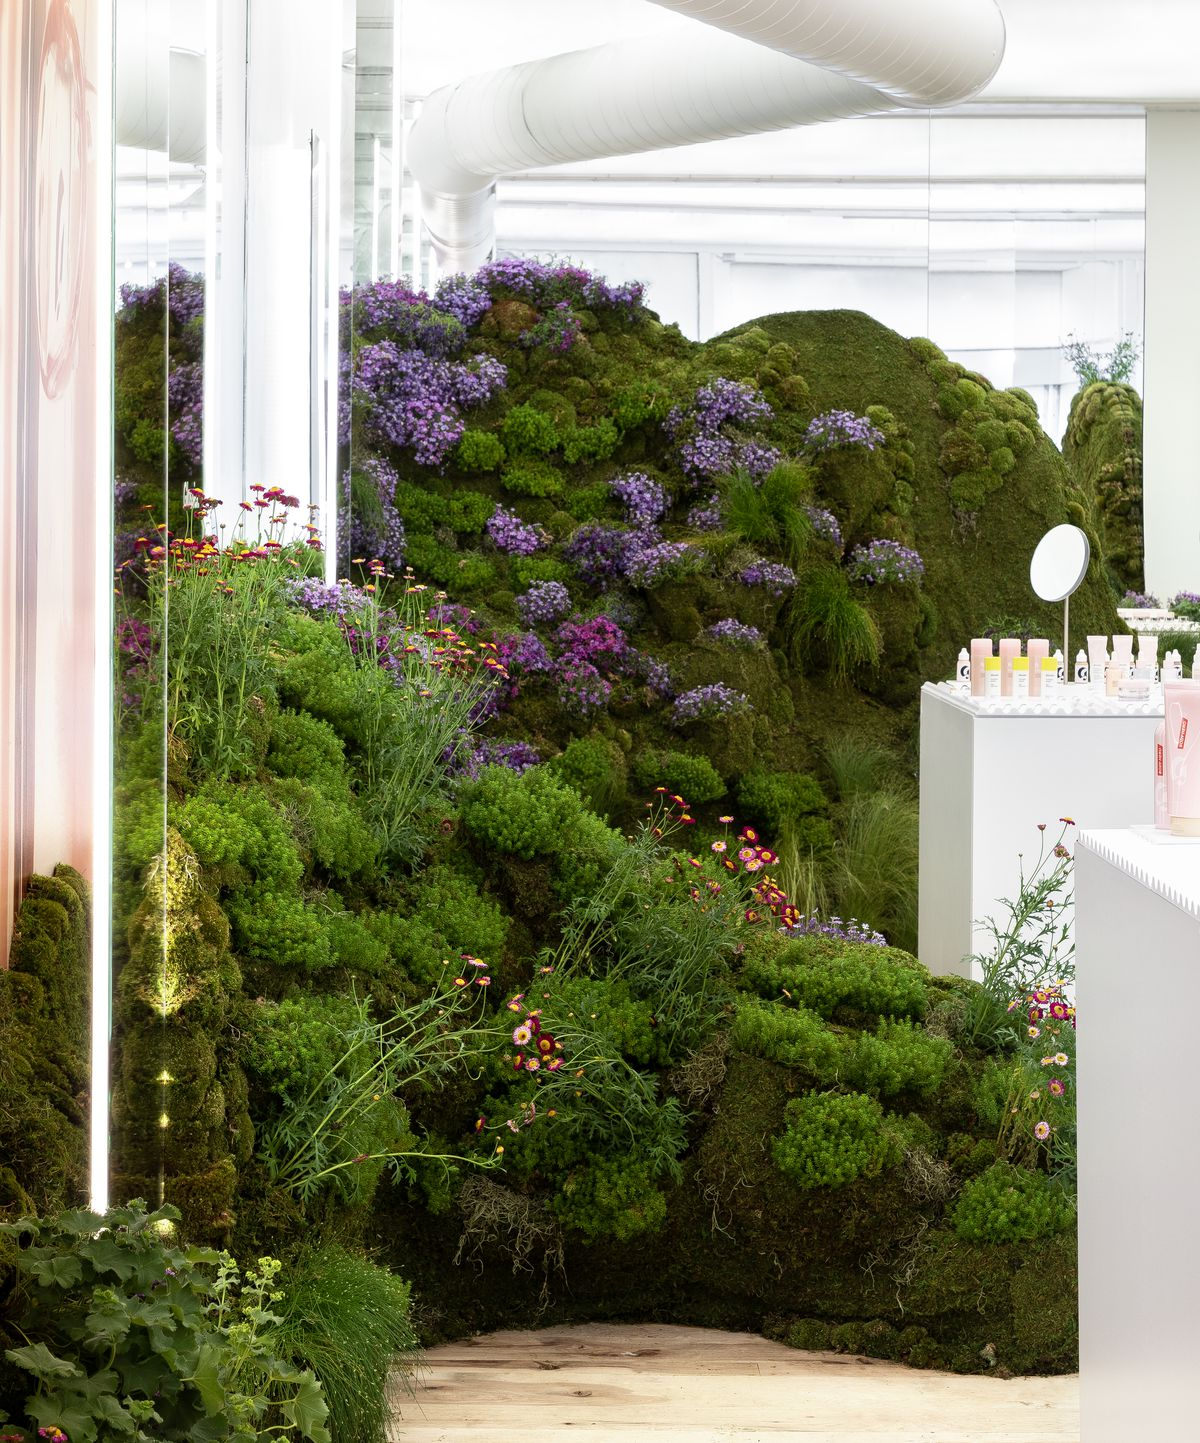 Kylie Jenner's roses, Glossier's flower hills: Plant ... on bathroom filled with plants, bedroom filled with plants, house full of plants, house books,